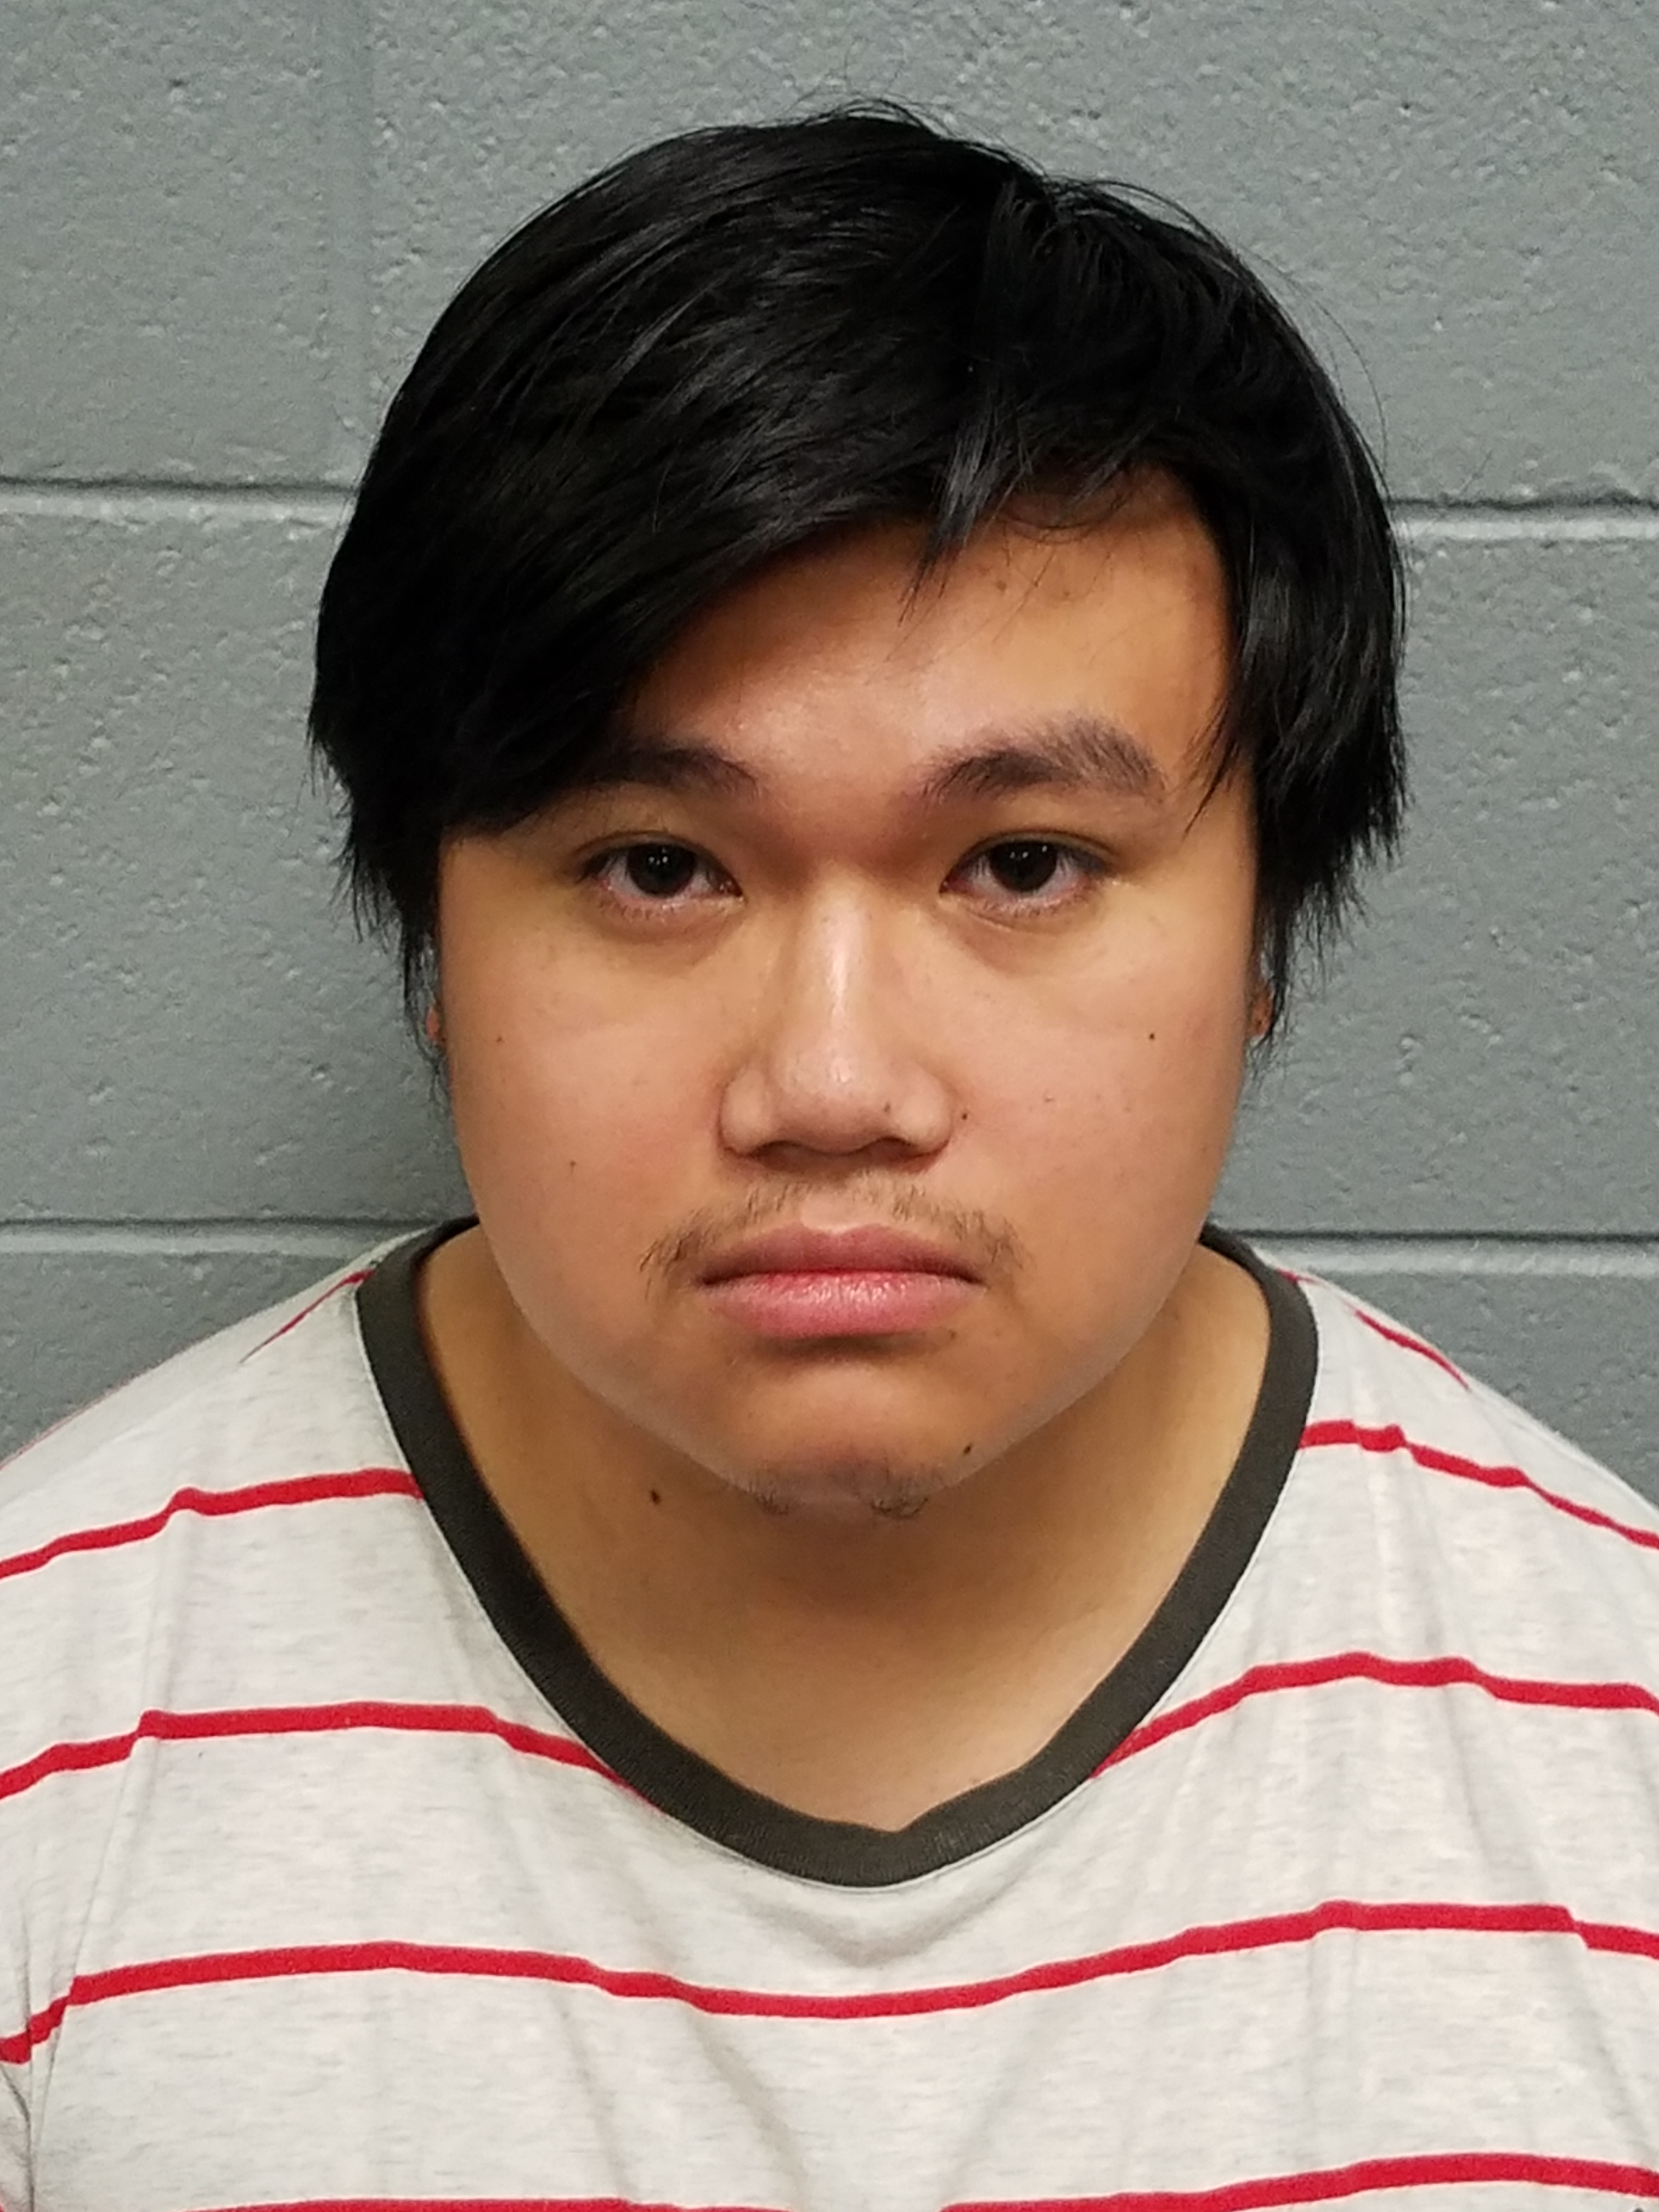 Winslow Township Man Charged with Distribution of Child